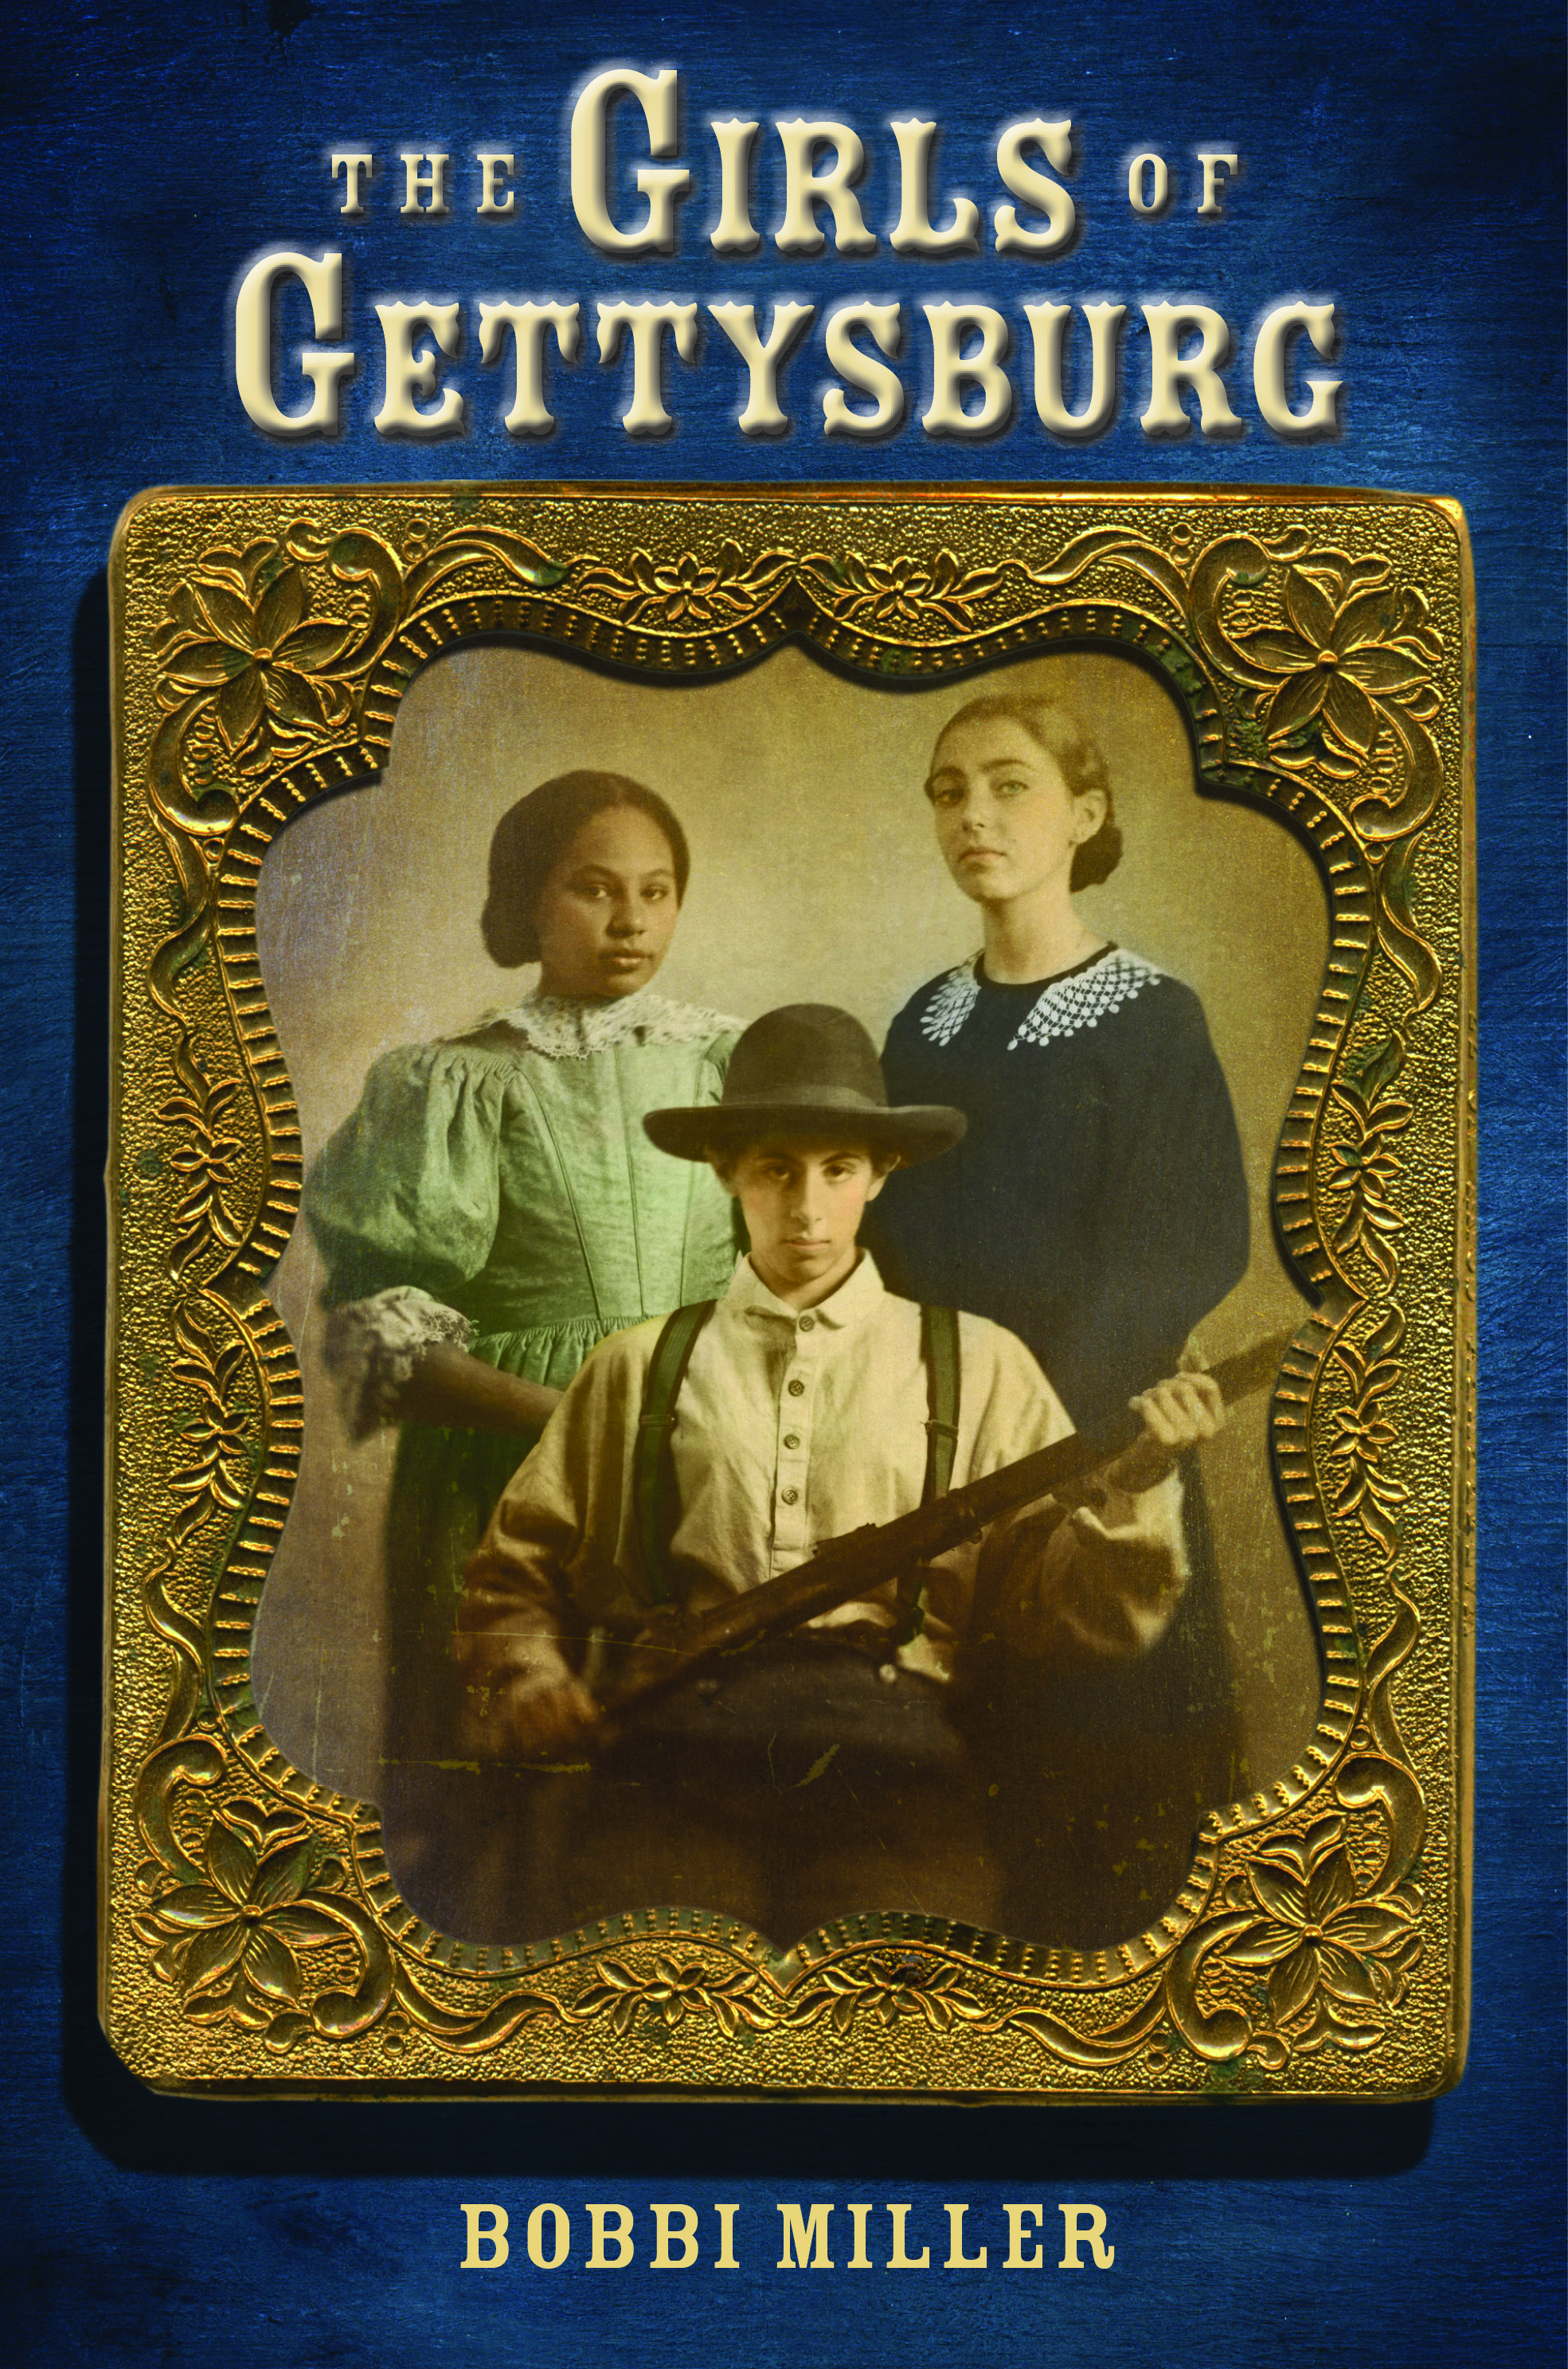 The Girls of Gettysburg